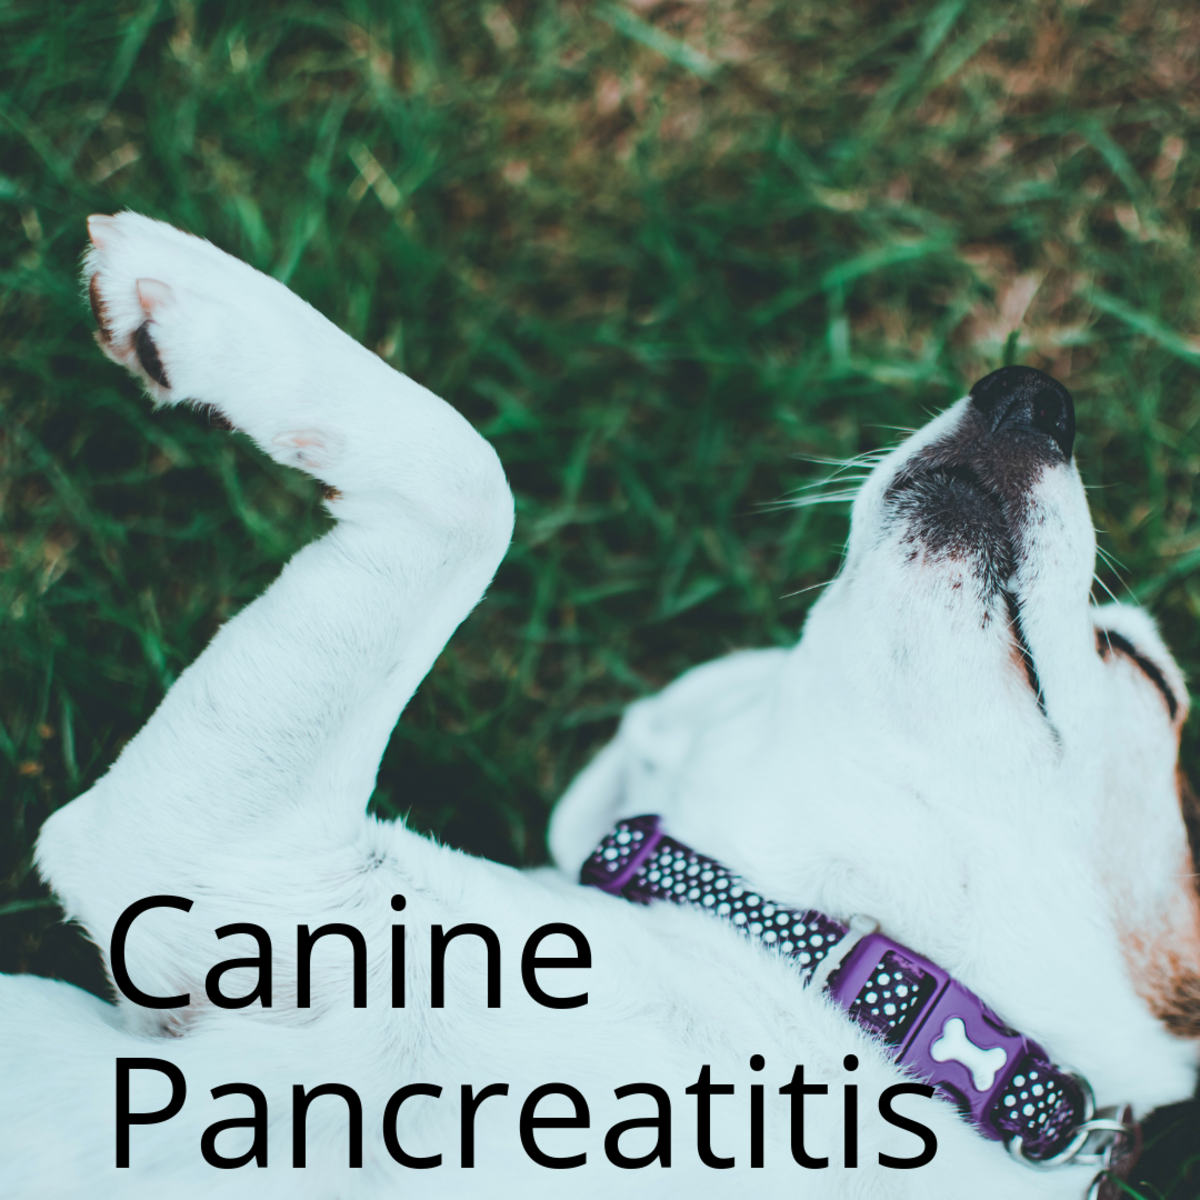 What Is Canine Pancreatitis?